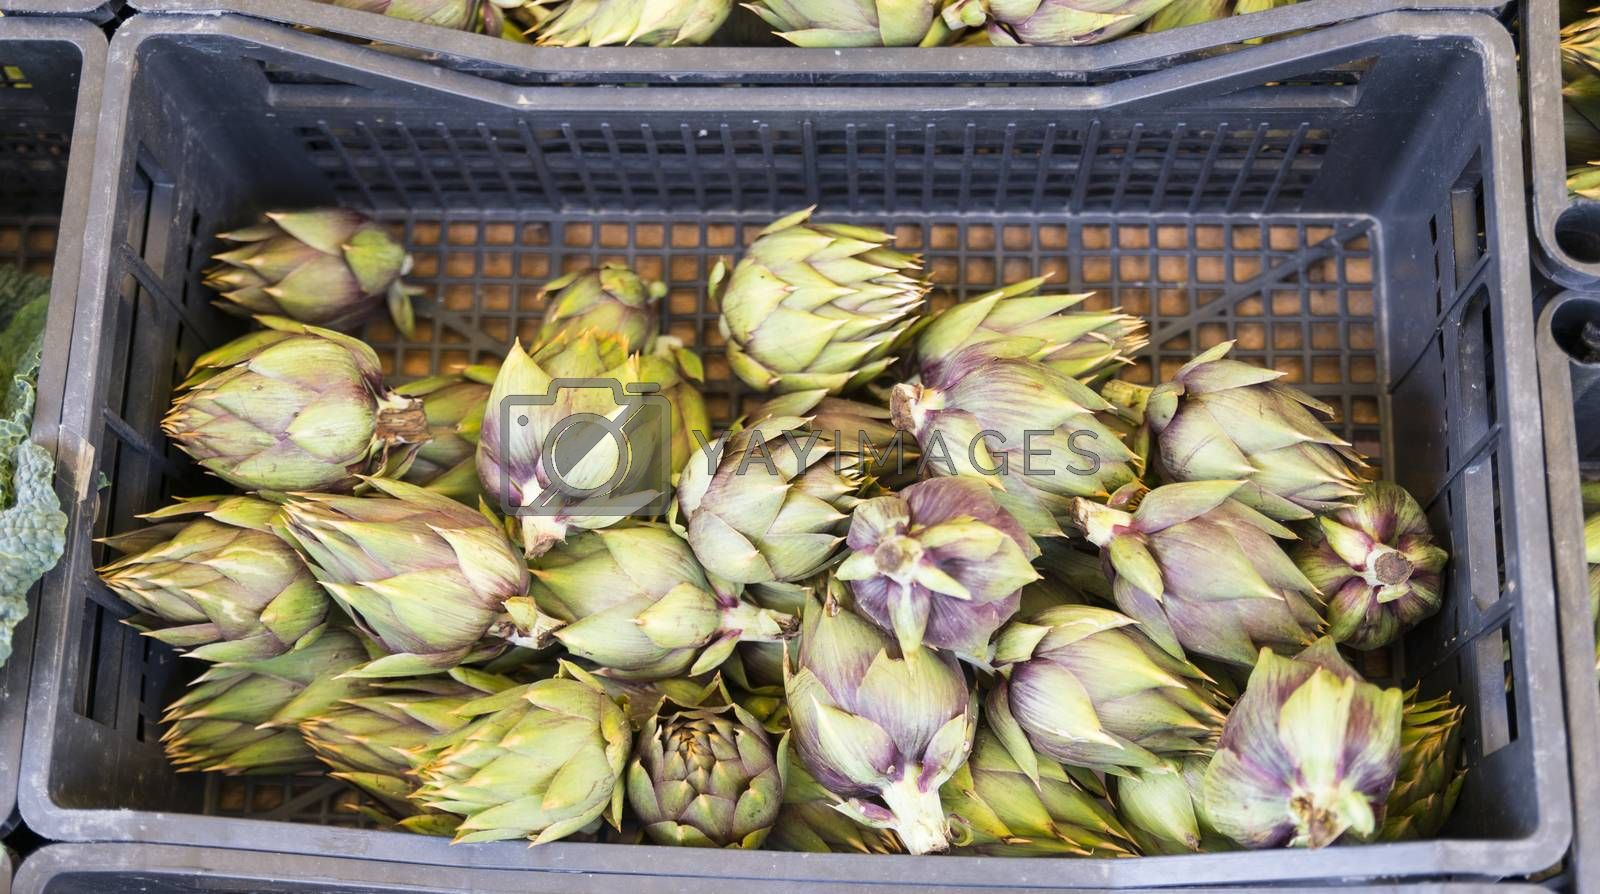 artichokes for sale on the market by compuinfoto